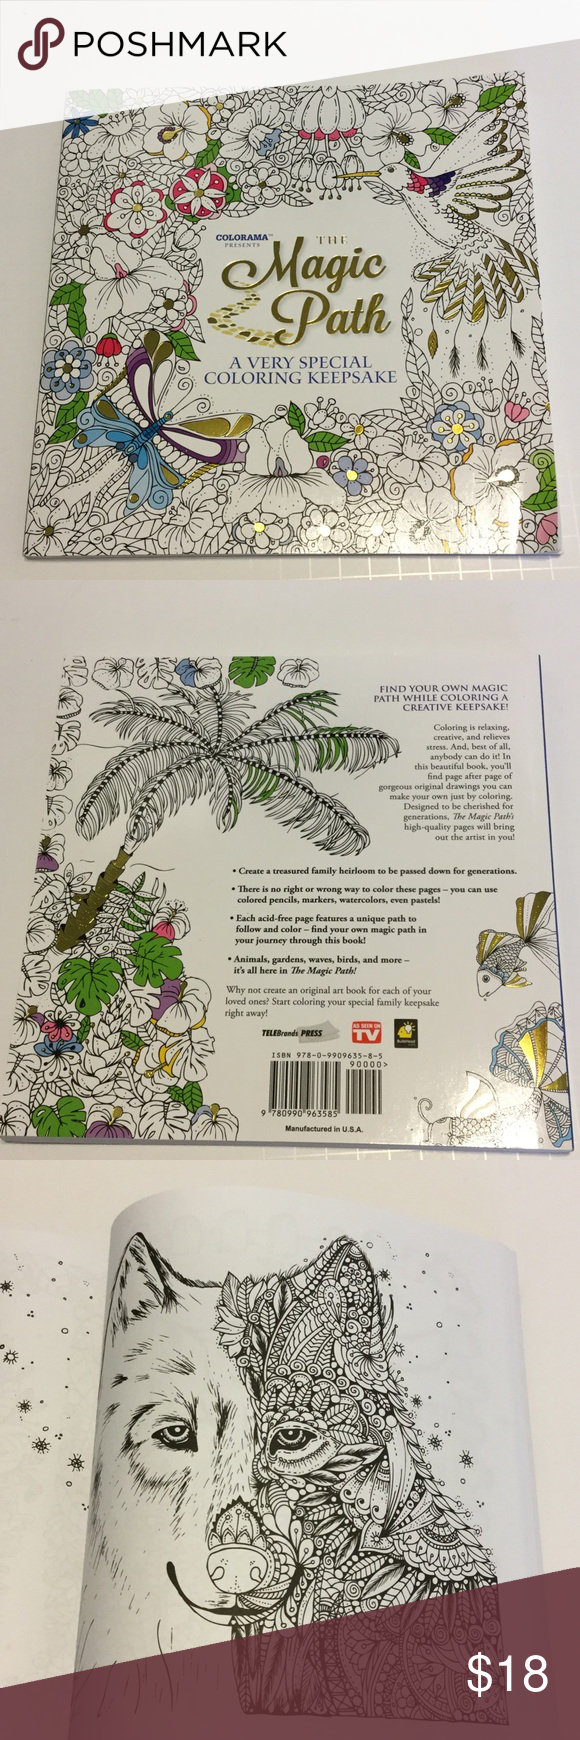 Colorarama The Magic Path Coloring Book A Very Special Coloring